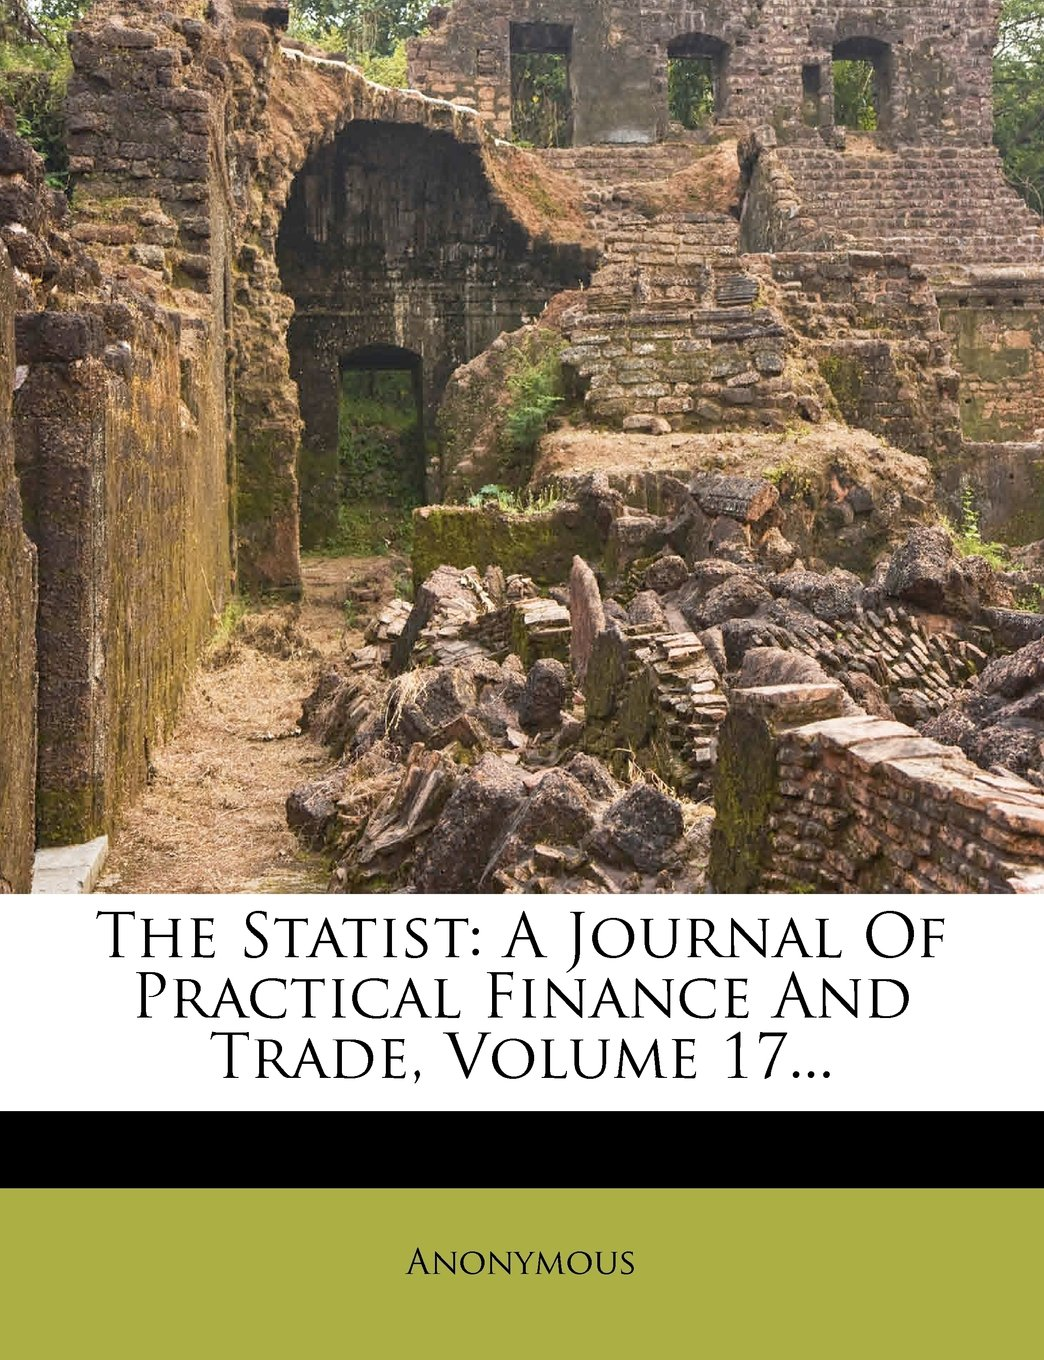 The Statist: A Journal Of Practical Finance And Trade, Volume 17... ebook